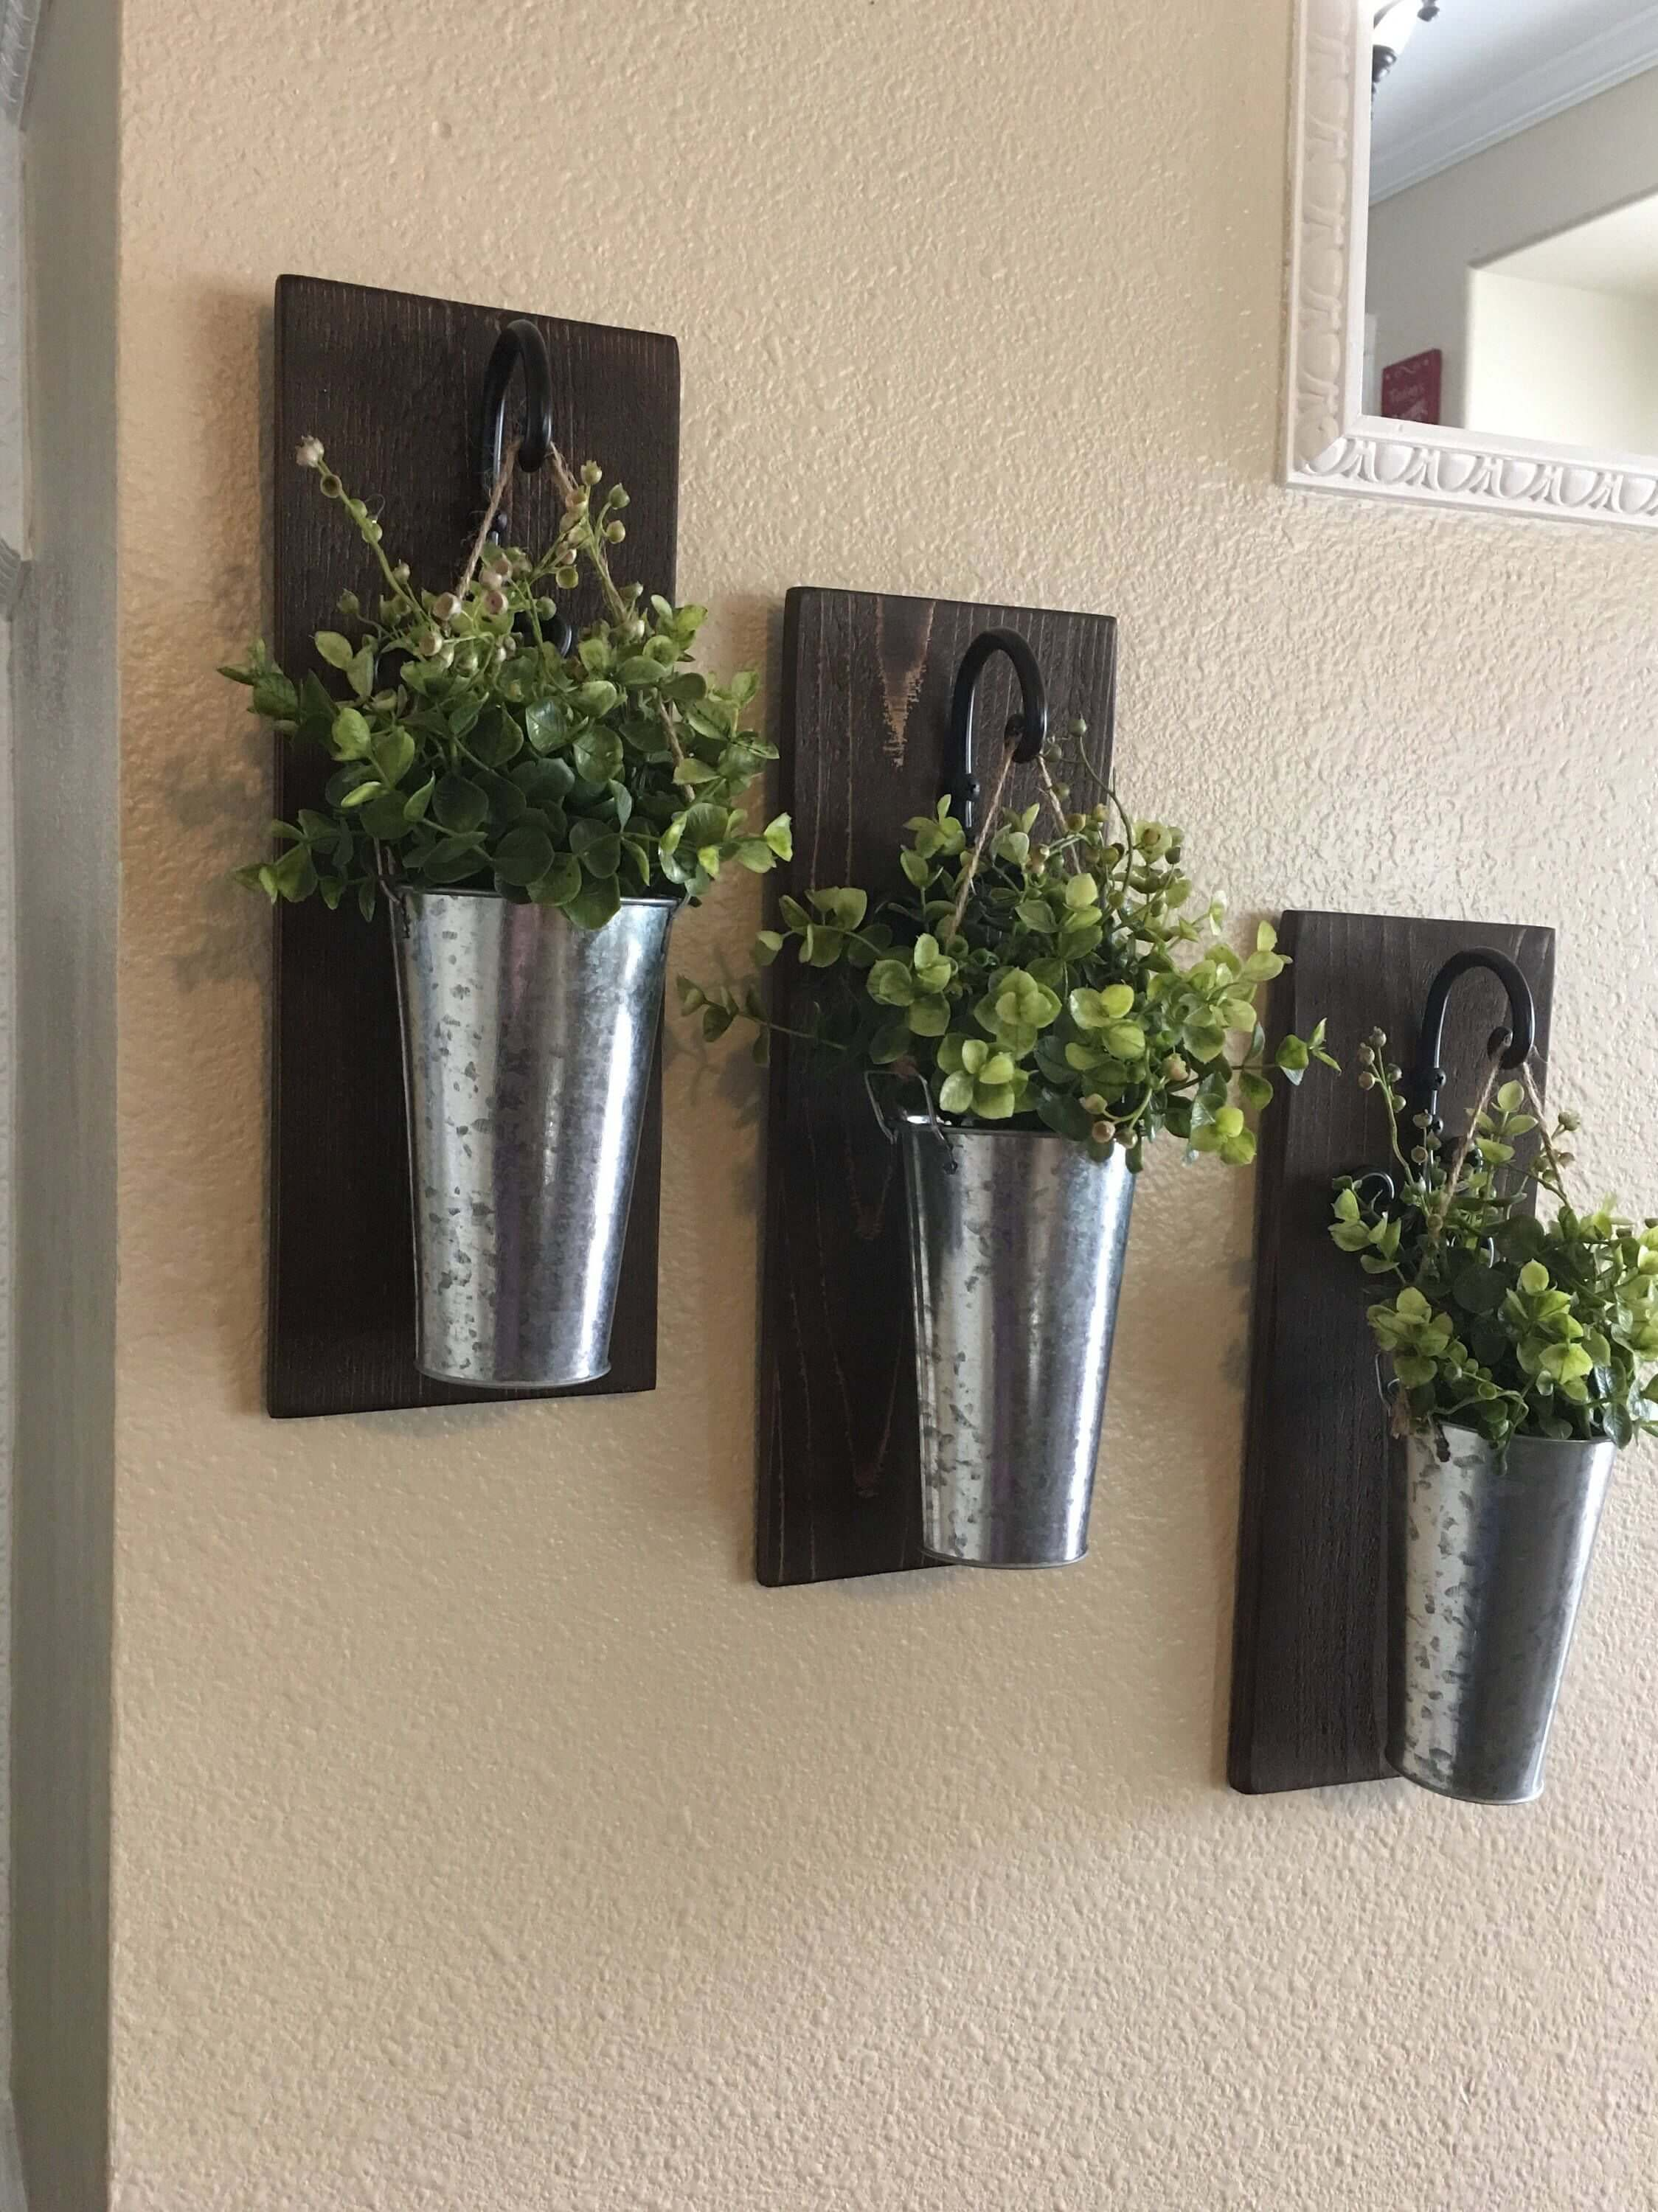 36 Best Farmhouse Plant Decor Ideas And Designs For 2019 Throughout Farm Metal Wall Rack And 3 Tin Pot With Hanger Wall Decor (View 7 of 30)